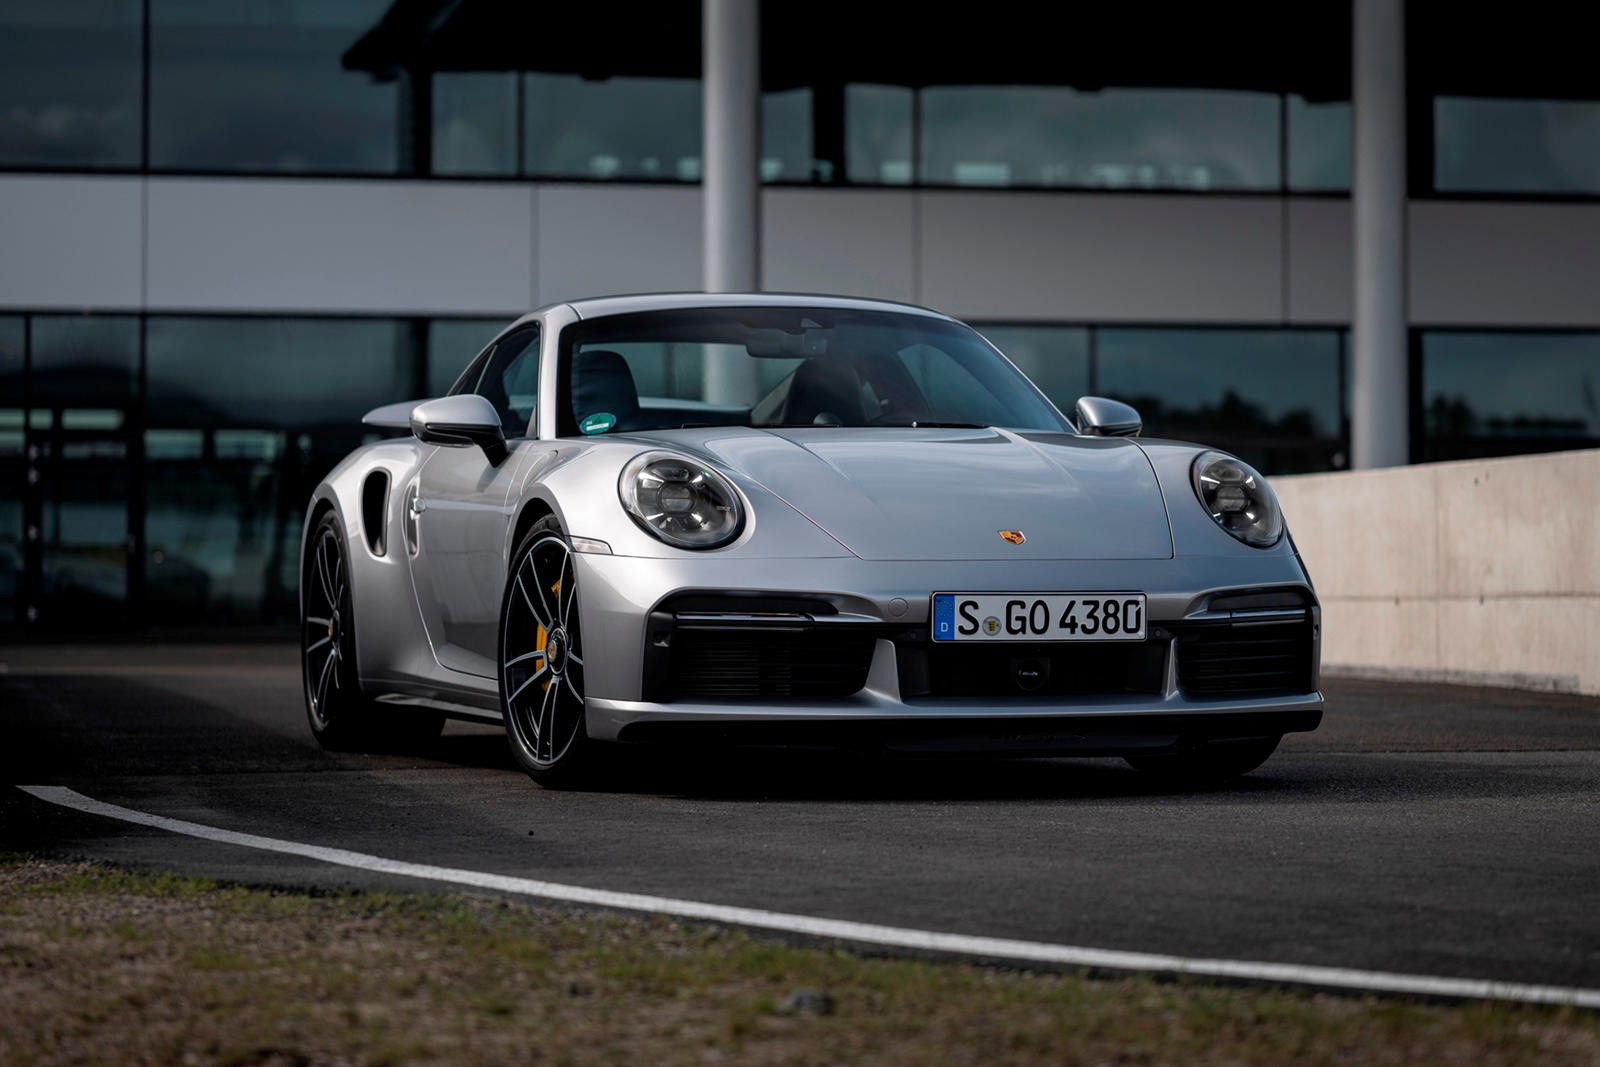 2021-porsche-911-turbo-s-first-drive-review:-daily-driver-with-monster-performance